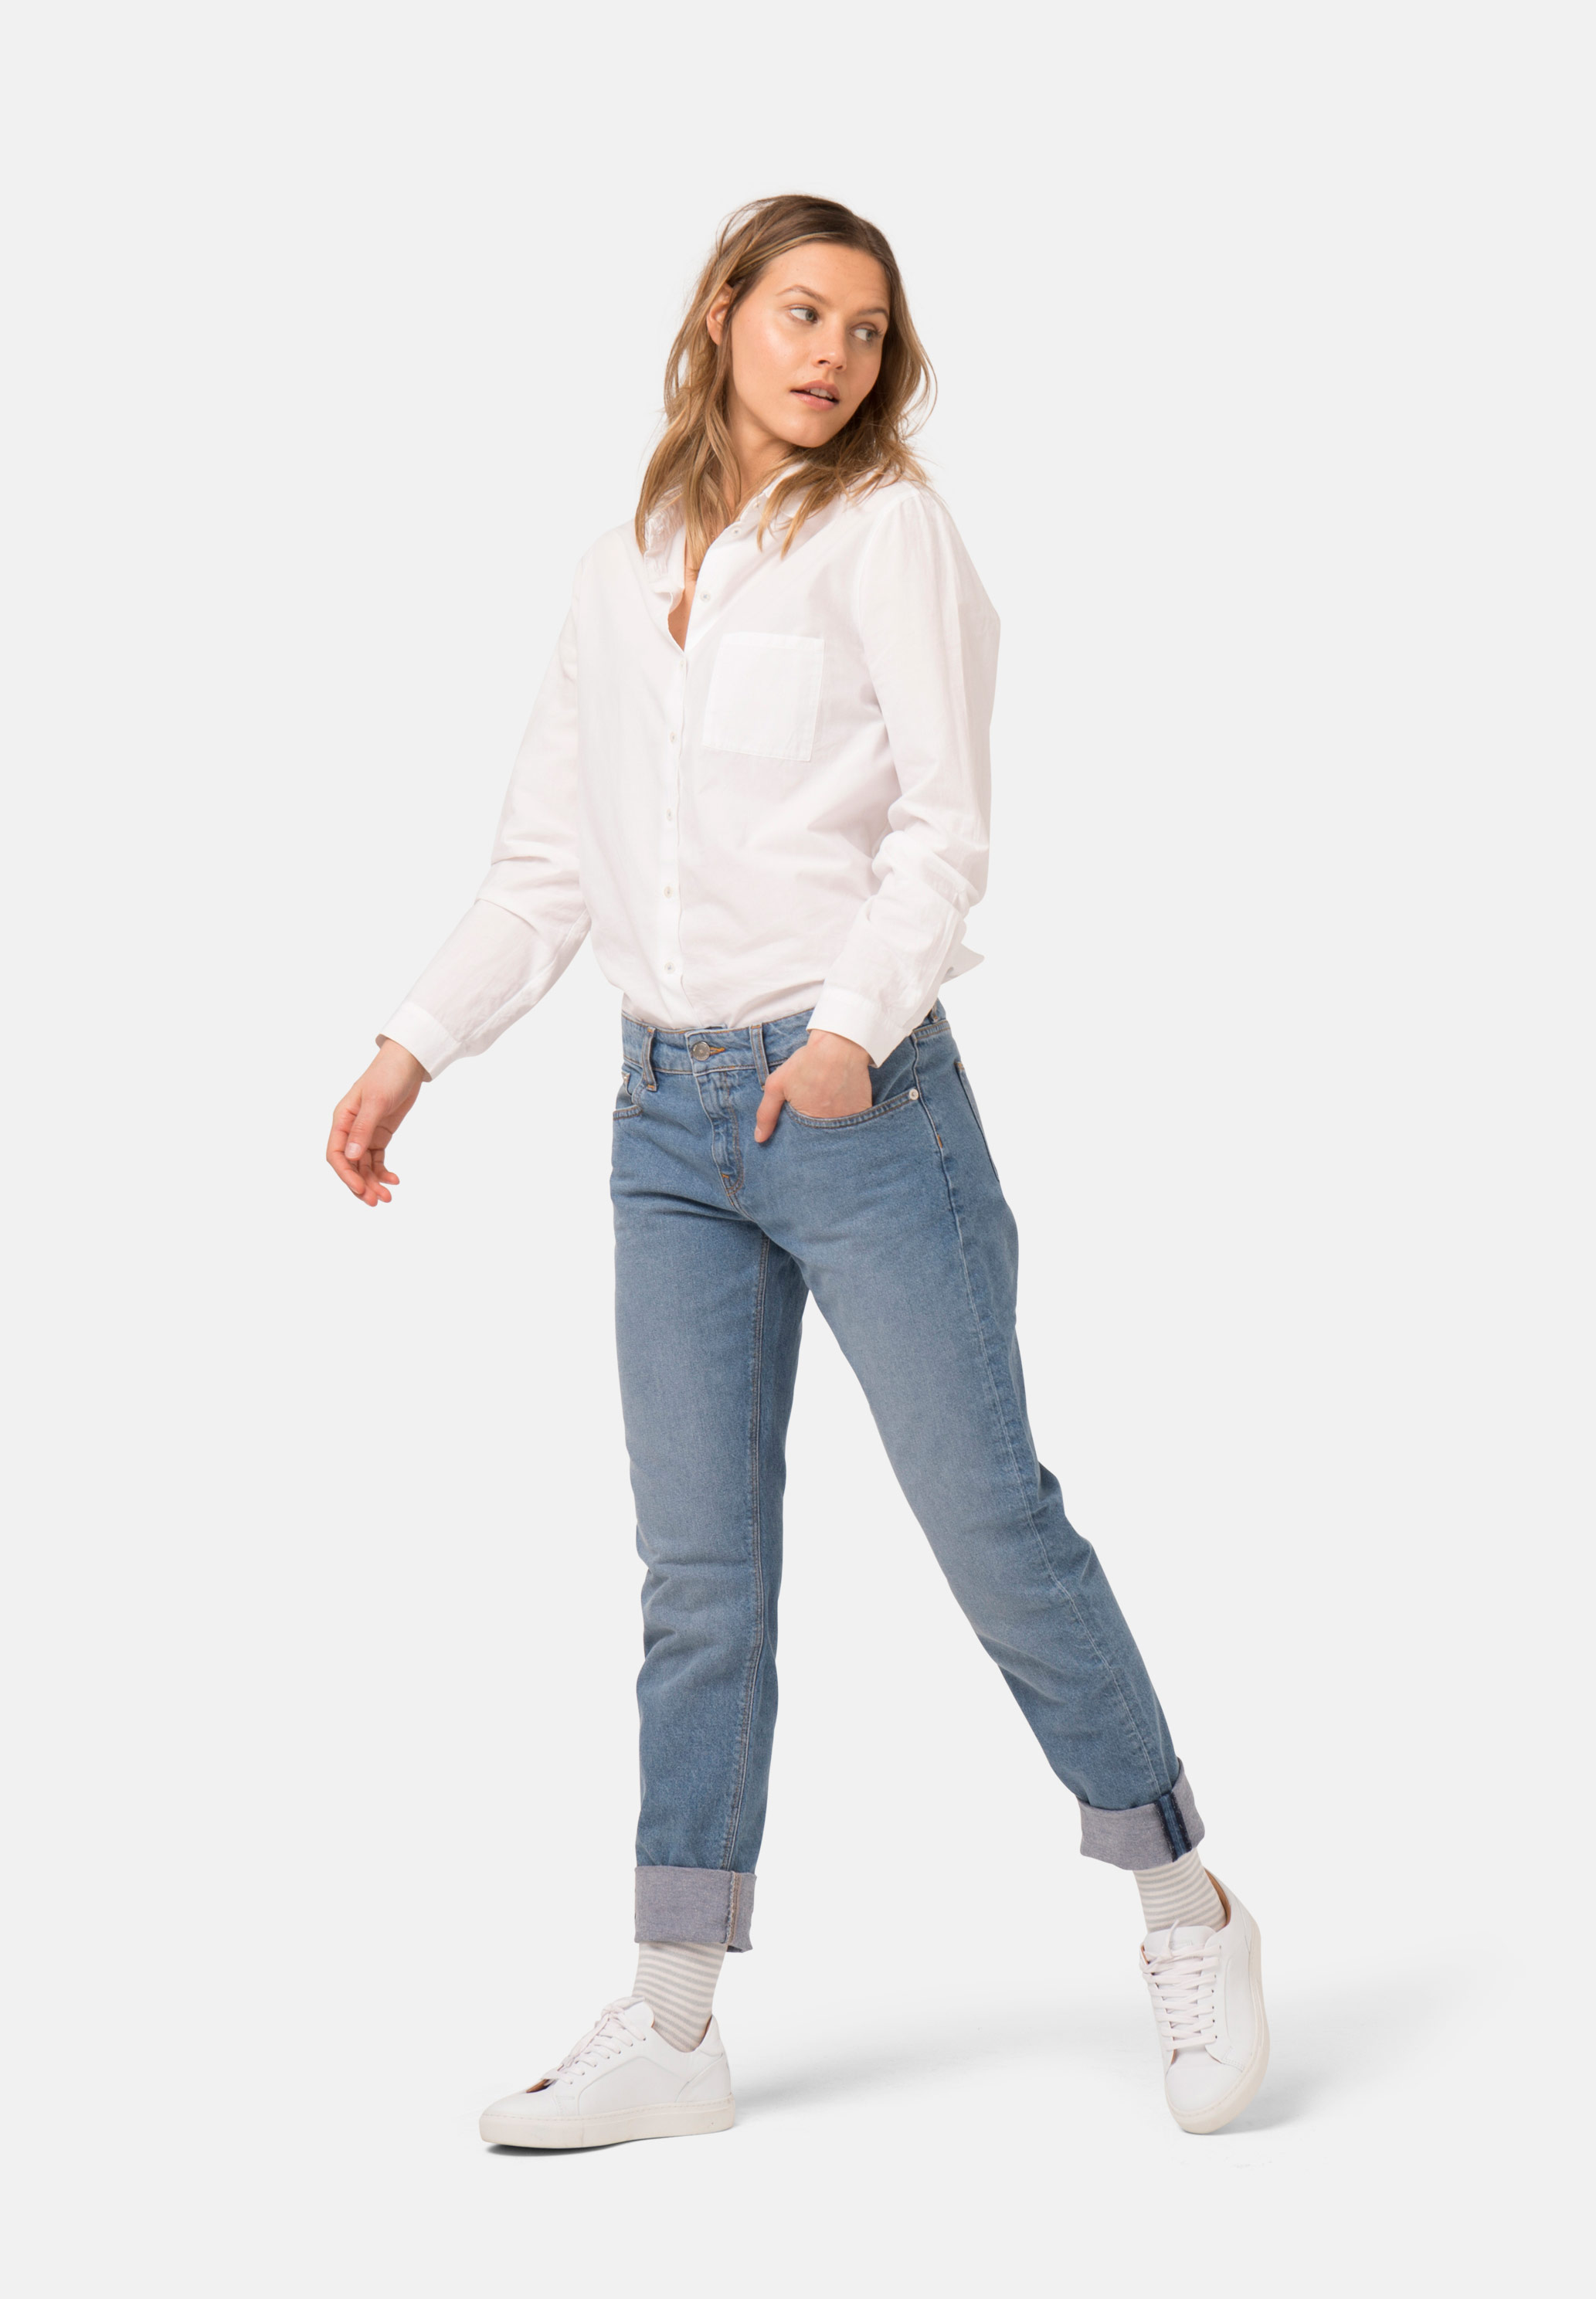 Mud Jeans work by being part of the circular economy they are creating a world where waste will be reused. At the moment, their jeans consist of between 23% – 40% post-consumer recycled denim.   MUD Jeans £119